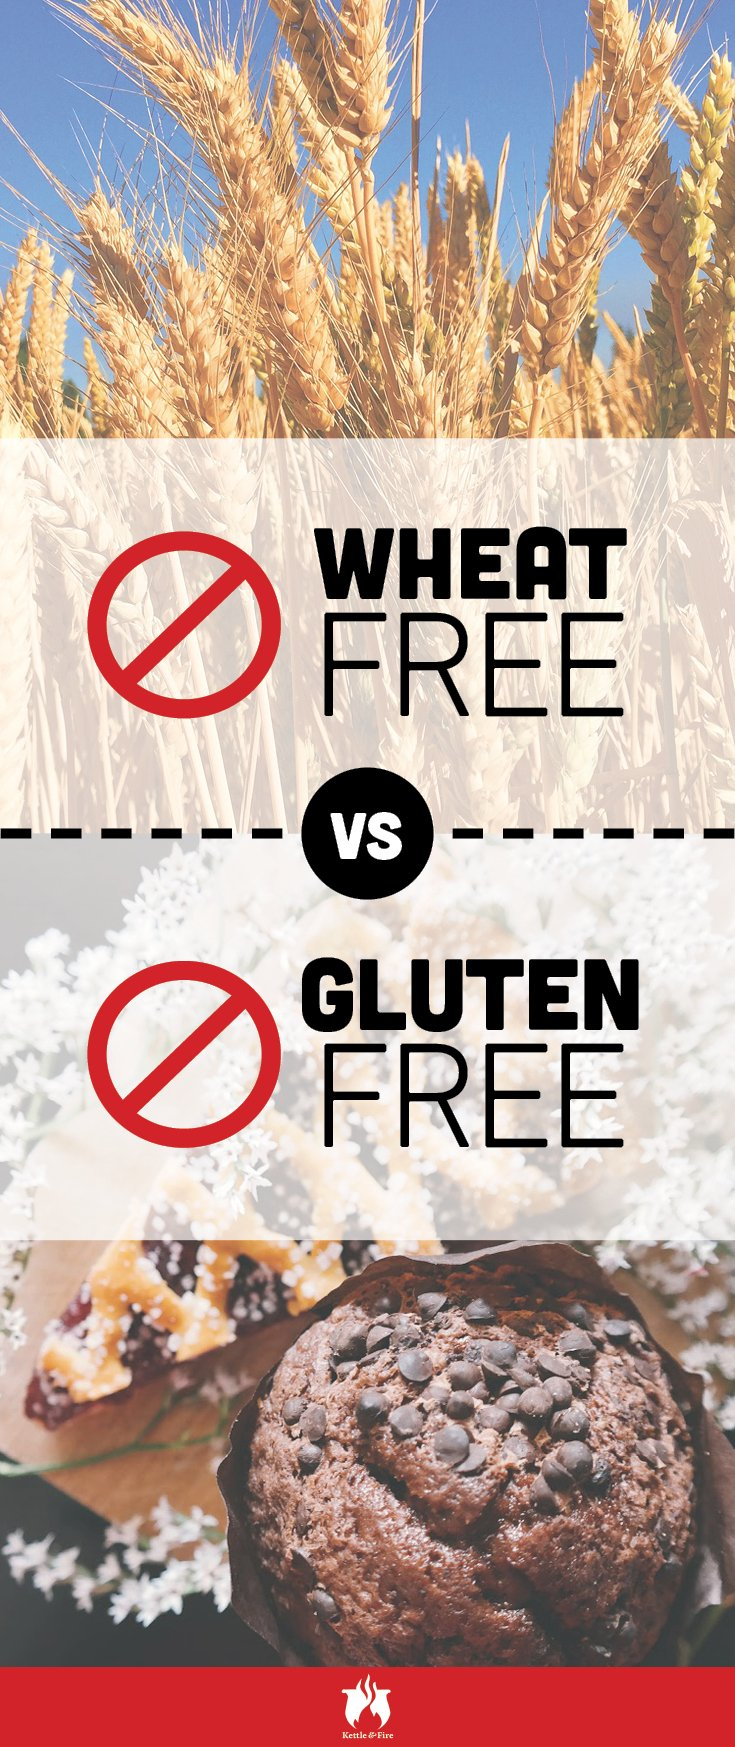 Ever confused about gluten free vs. wheat free? We've laid out the difference for you.